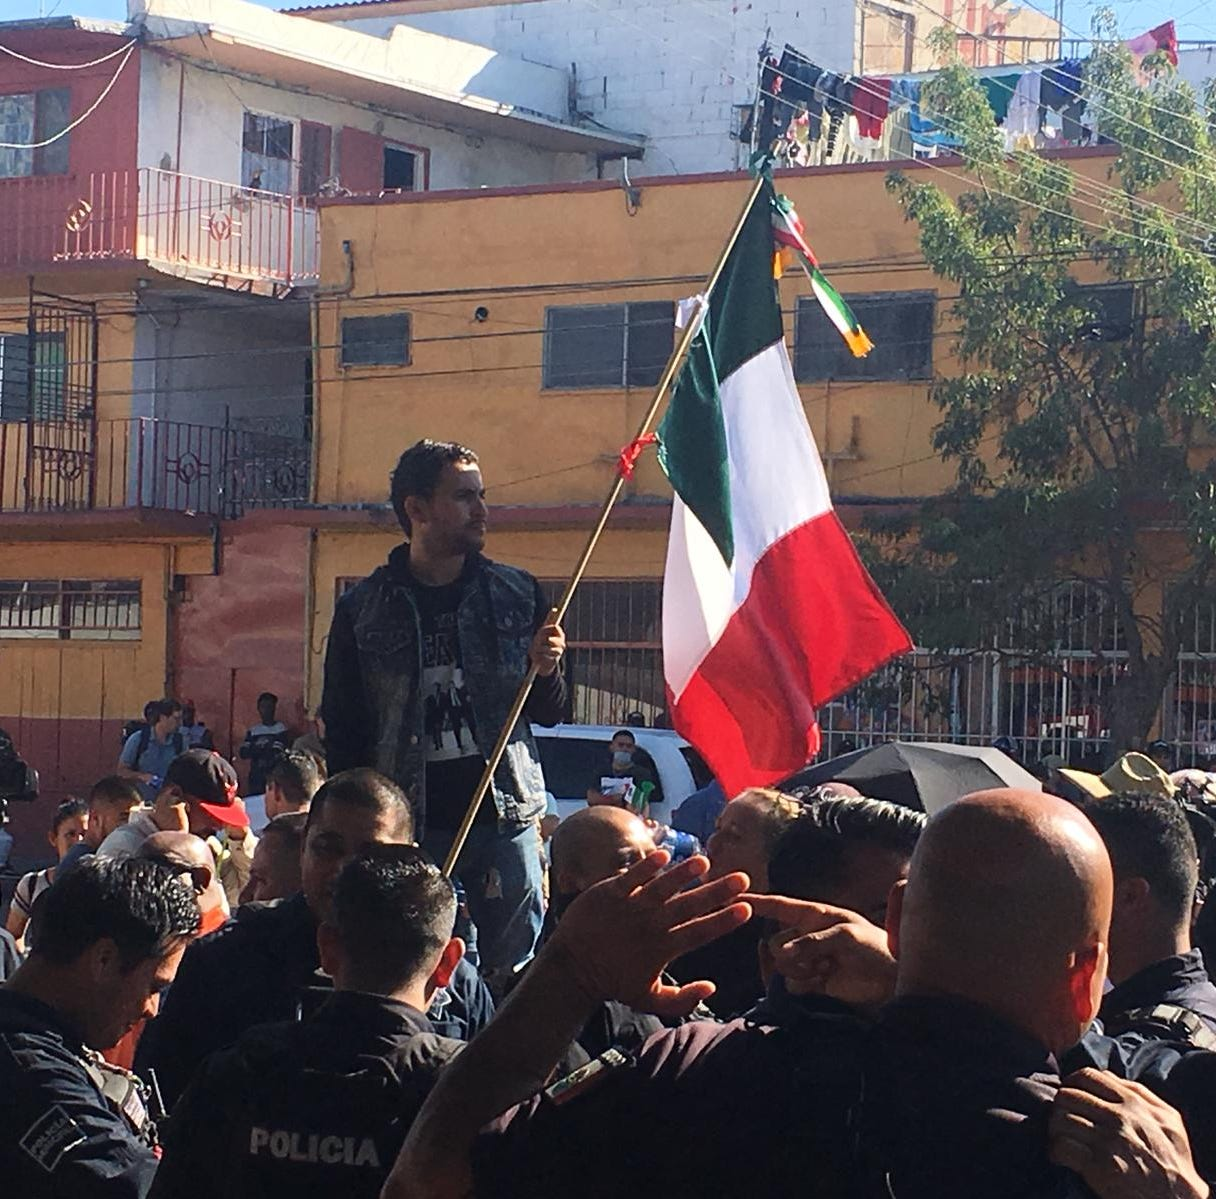 Protesters march against migrant caravan in Tijuana; Police don riot gear